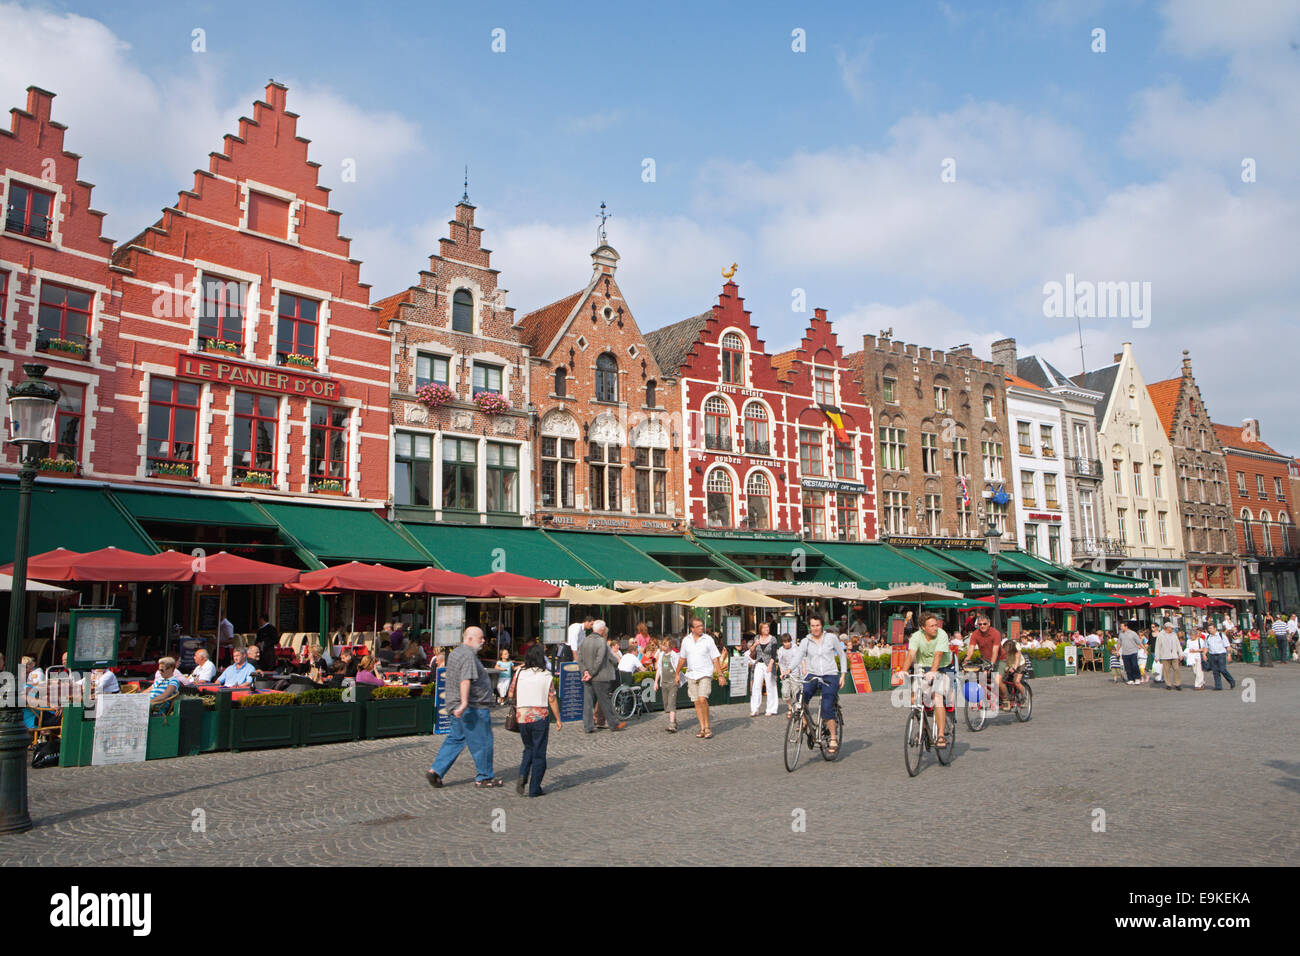 MARKET SQUARE IN BRUGGES WITH TOURISTS AND CAFES - Stock Image